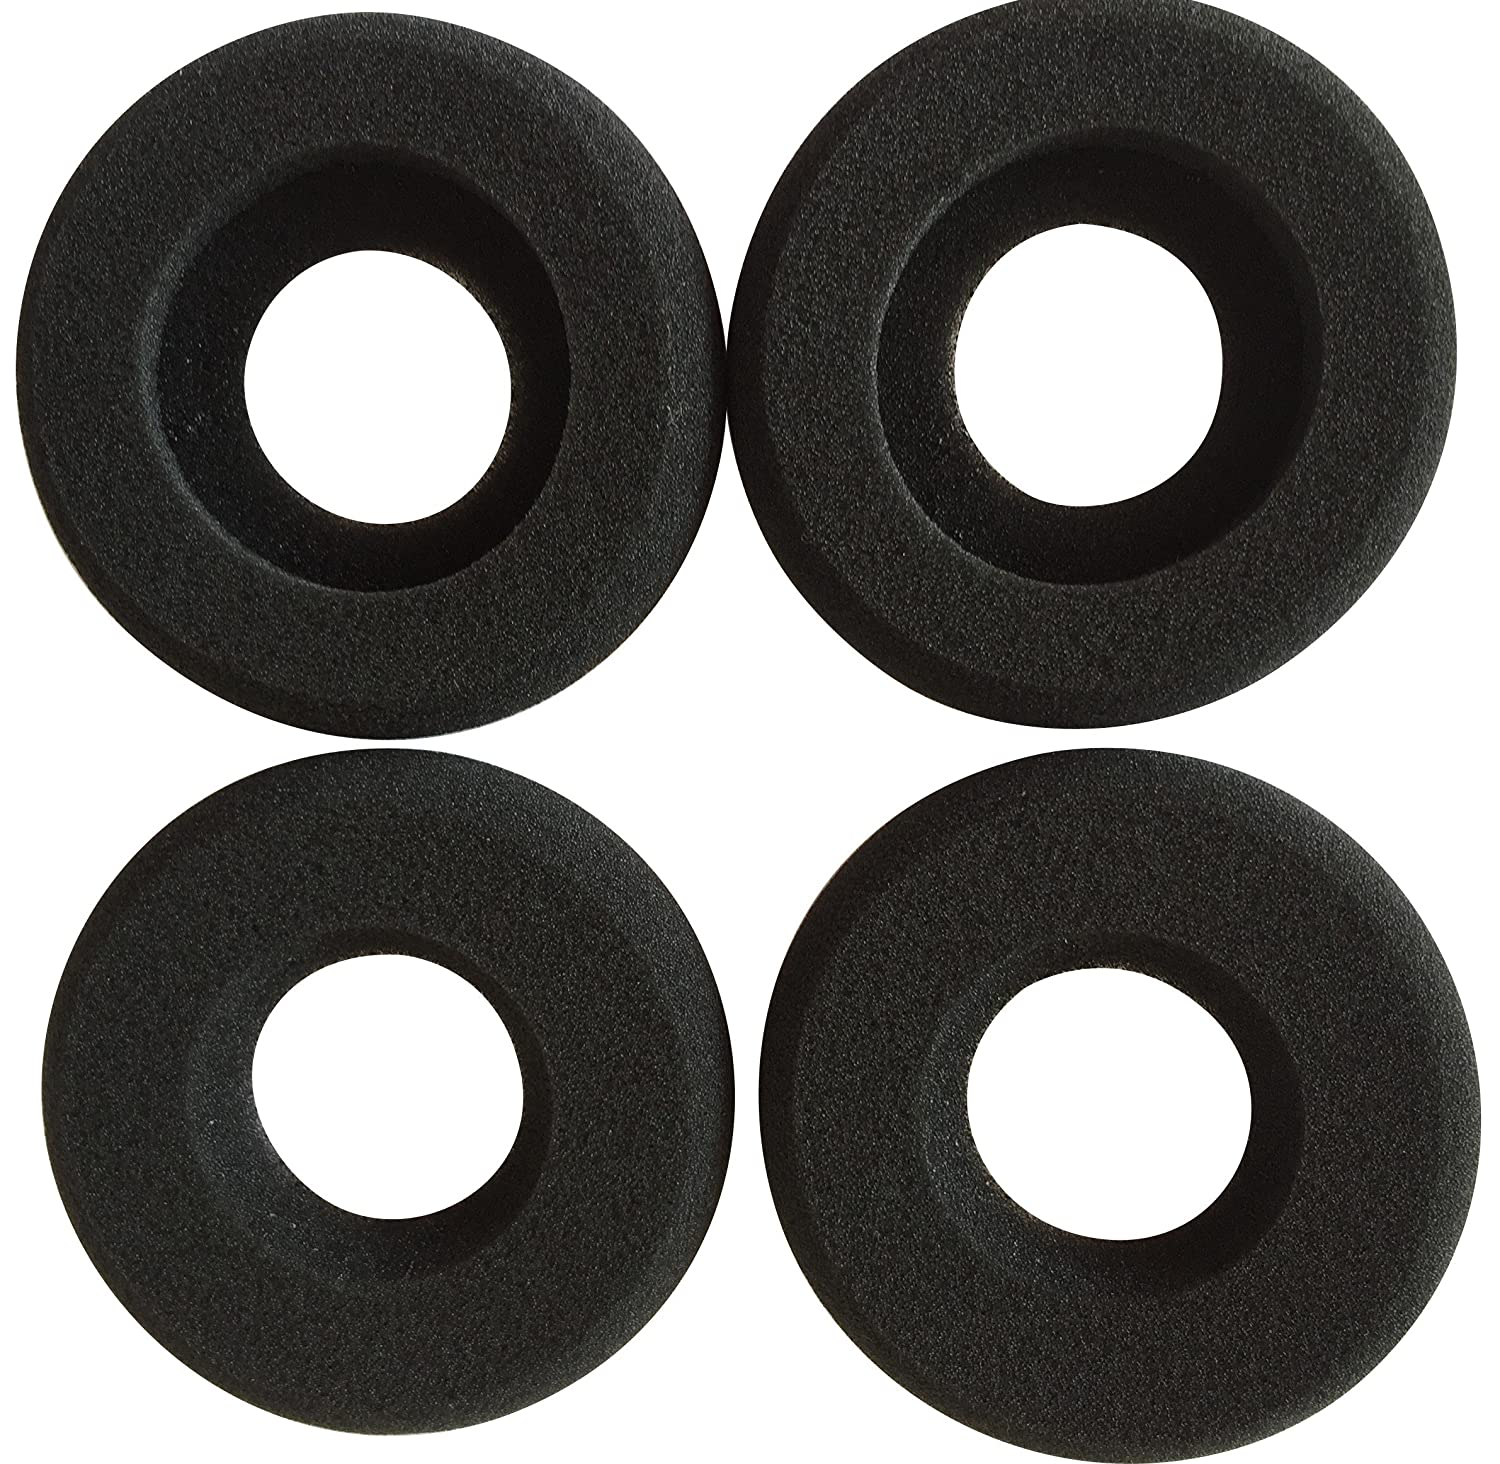 Ear Cushions Foam Doughnut Replacement for Plantronics Supra Plus Encore and Most Standard Size Office Telephone Headsets H251 H251N H261 H261N H351 H351N H361 H361N (10 Pack) VoiceJoy